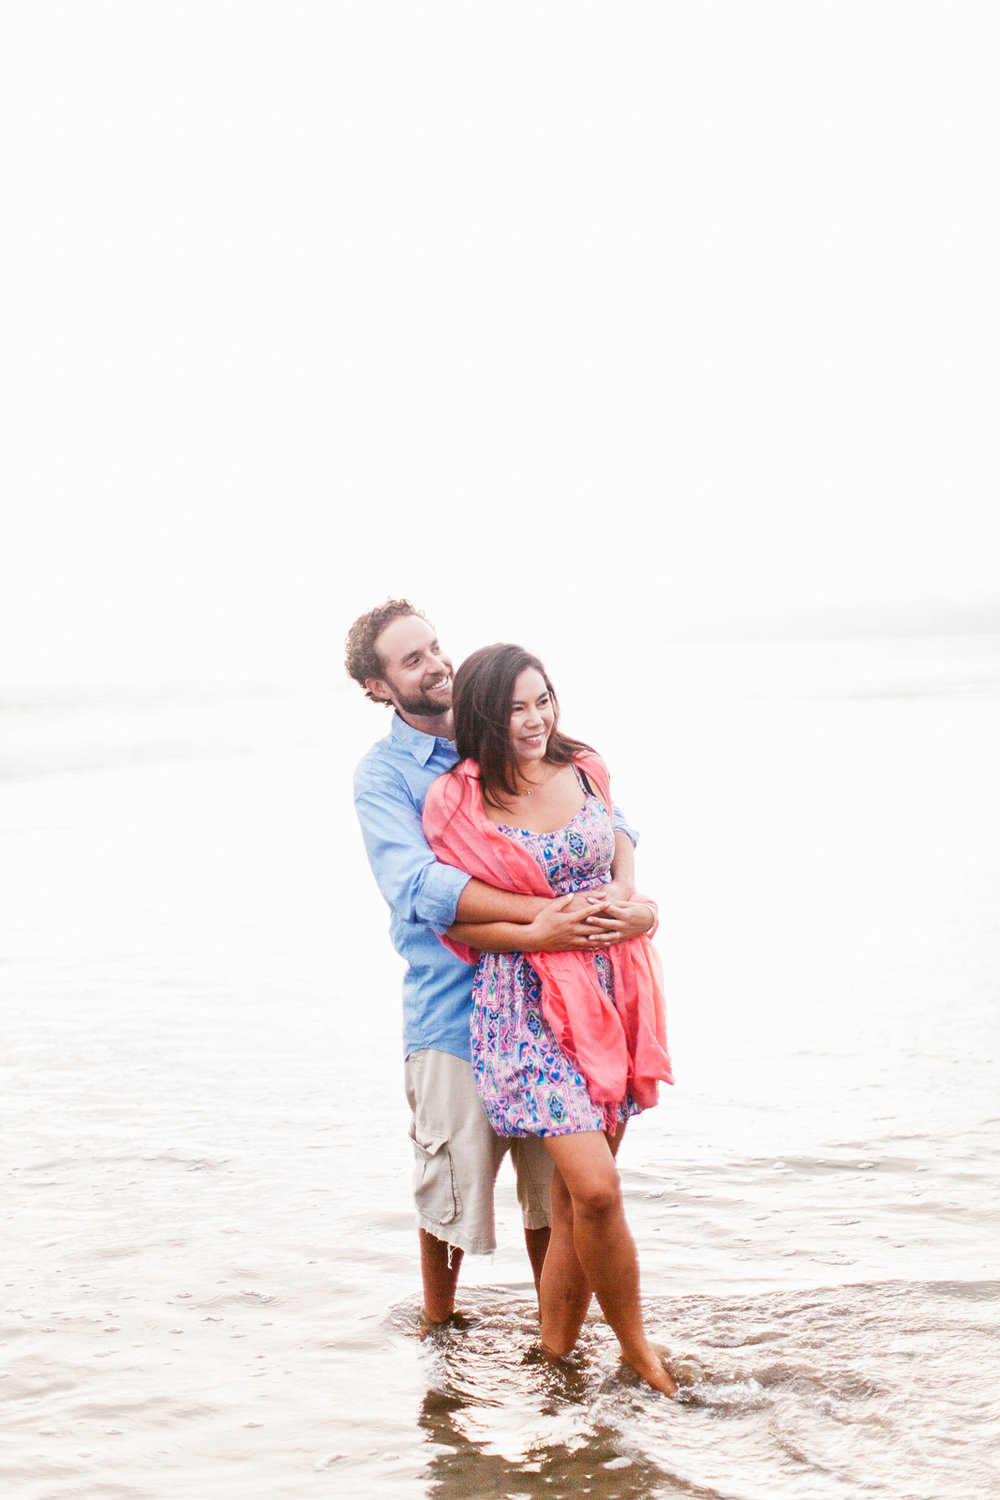 VENICE_BEACH_ENGAGEMENT_PHOTOGRAPHY_EBONY_SIOVHAN_BOKEH_PHOTOGRAPHY_-5.jpg